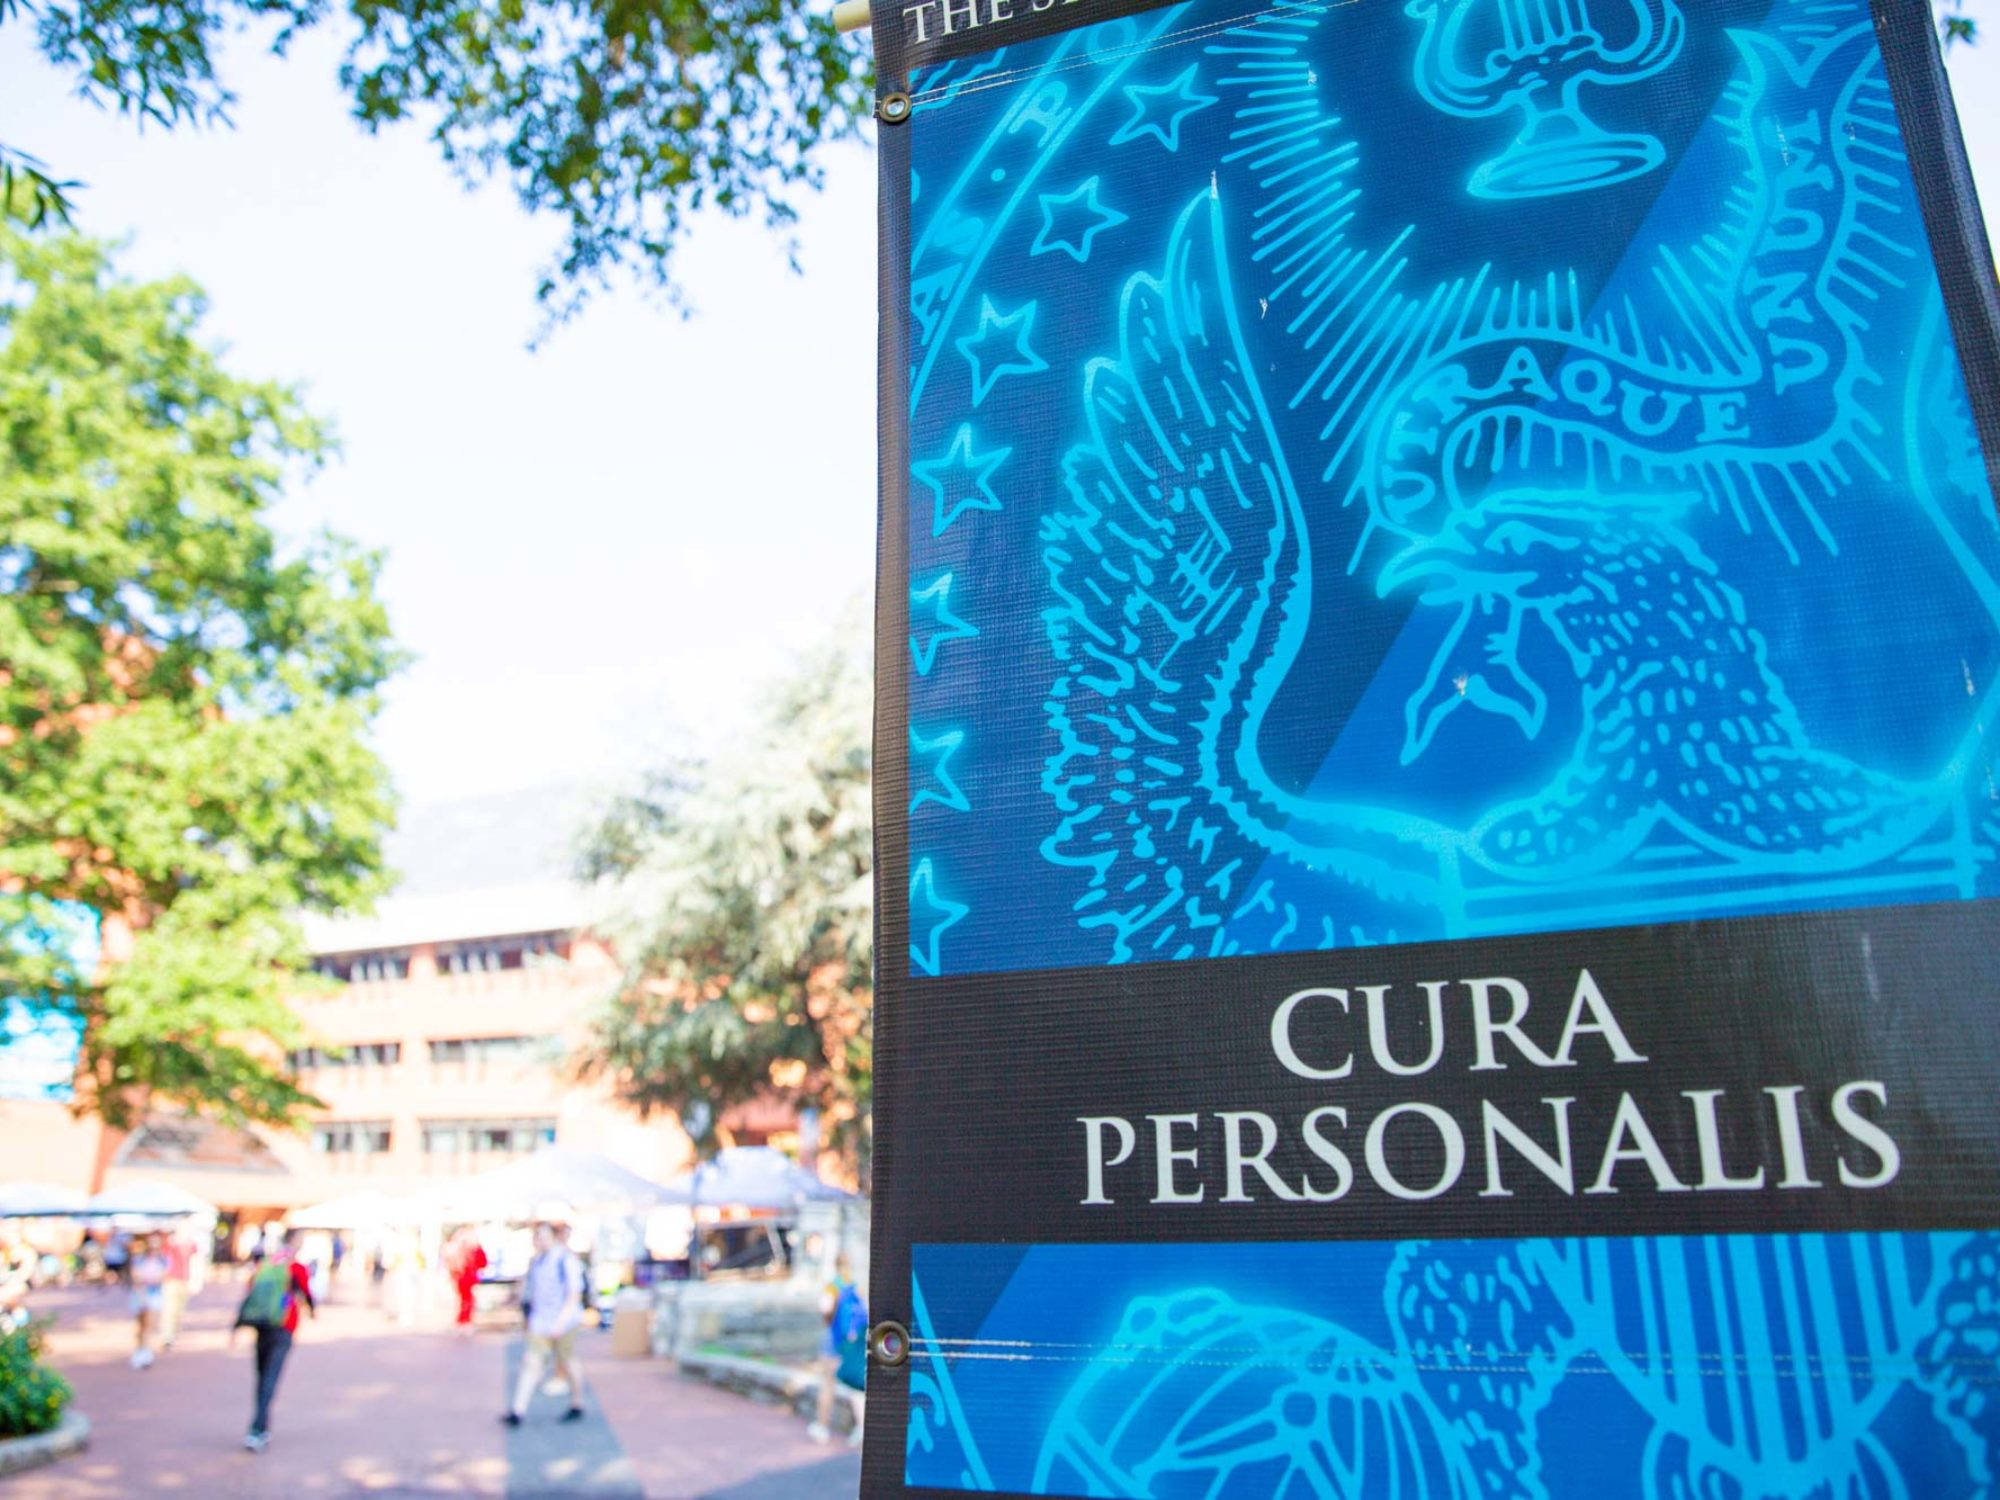 Banner hanging on campus lamppost that reads Cura Personalis